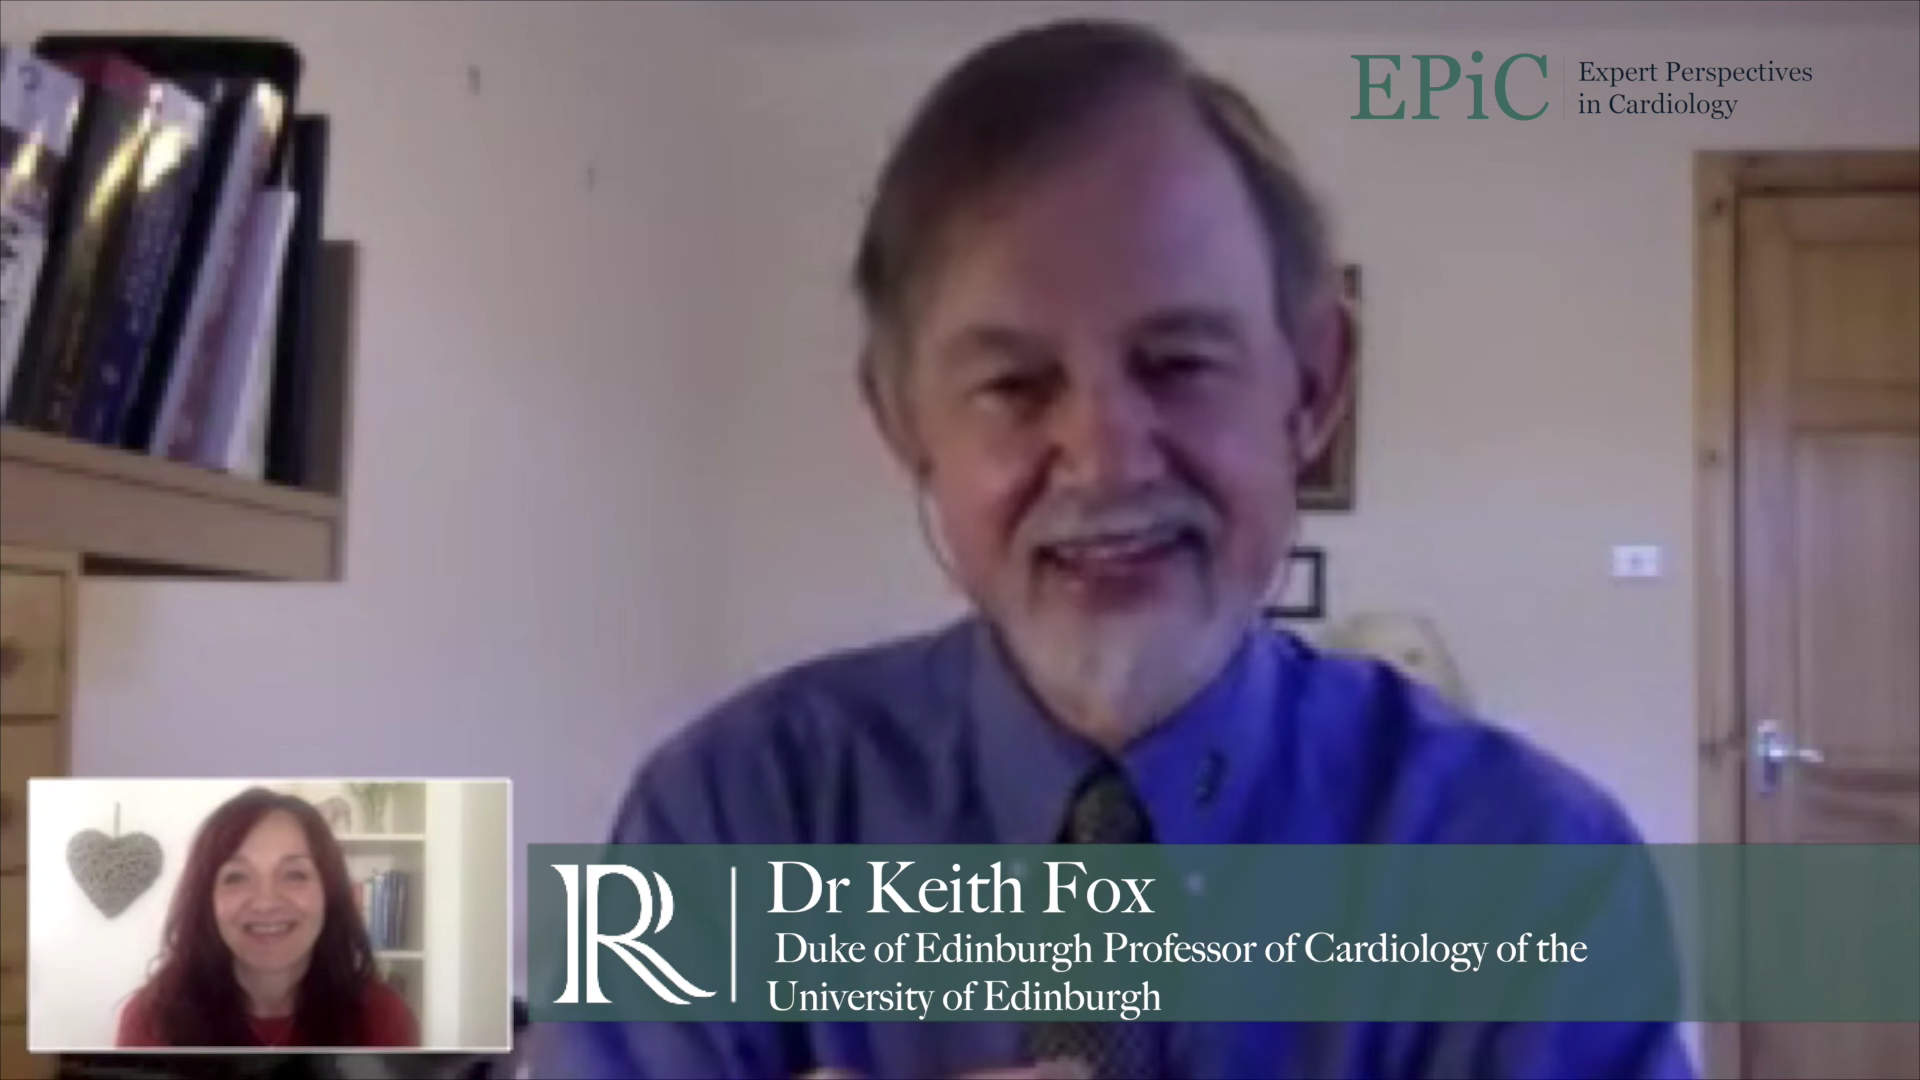 Dr Keith Fox